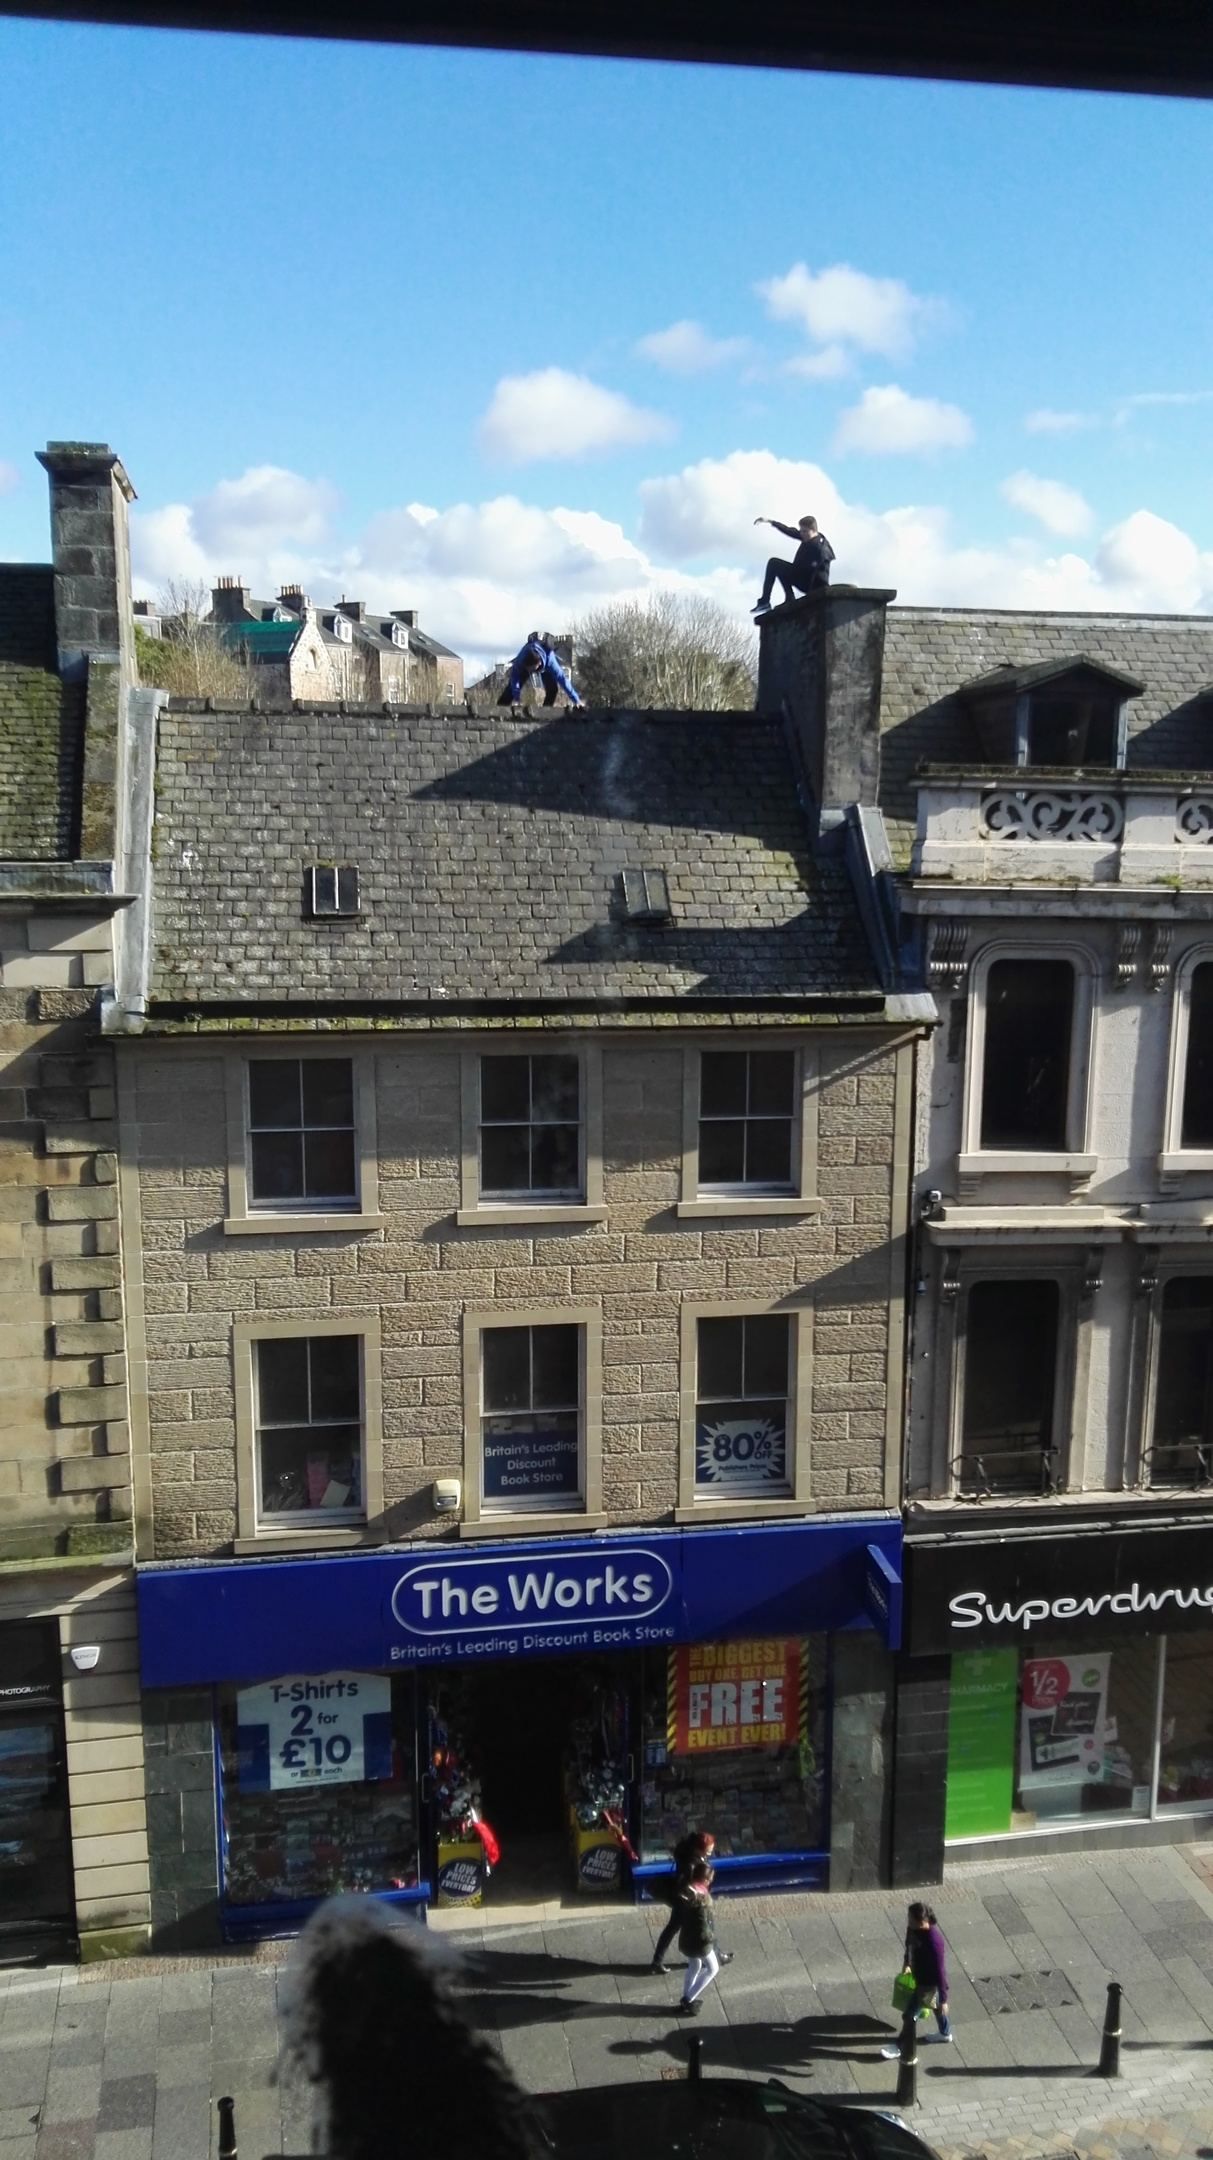 Children playing on rooftops in Inverness city centre